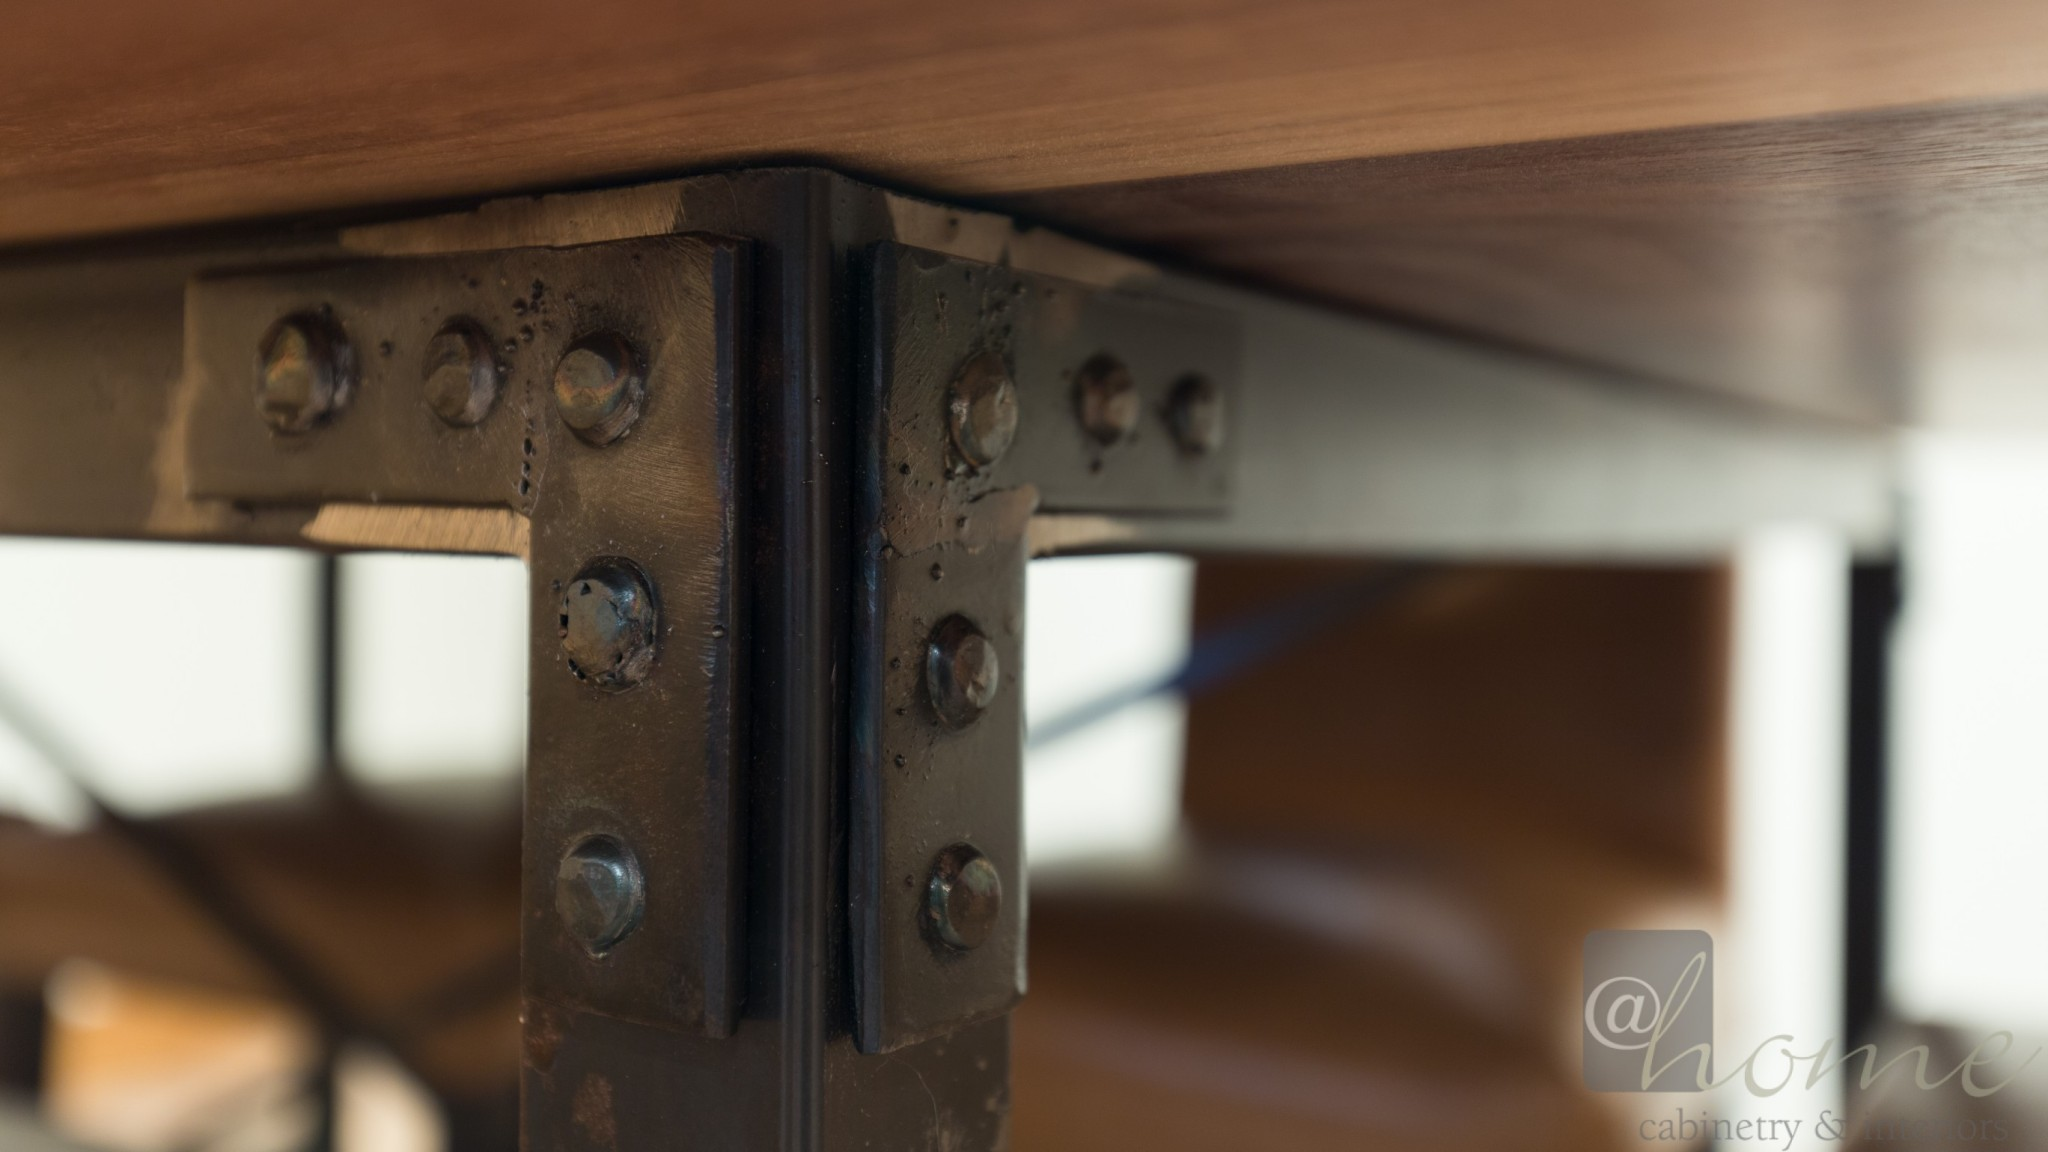 We designed the base & contracted a local metal smith to fabricate. The top is natural walnut with light distressing.